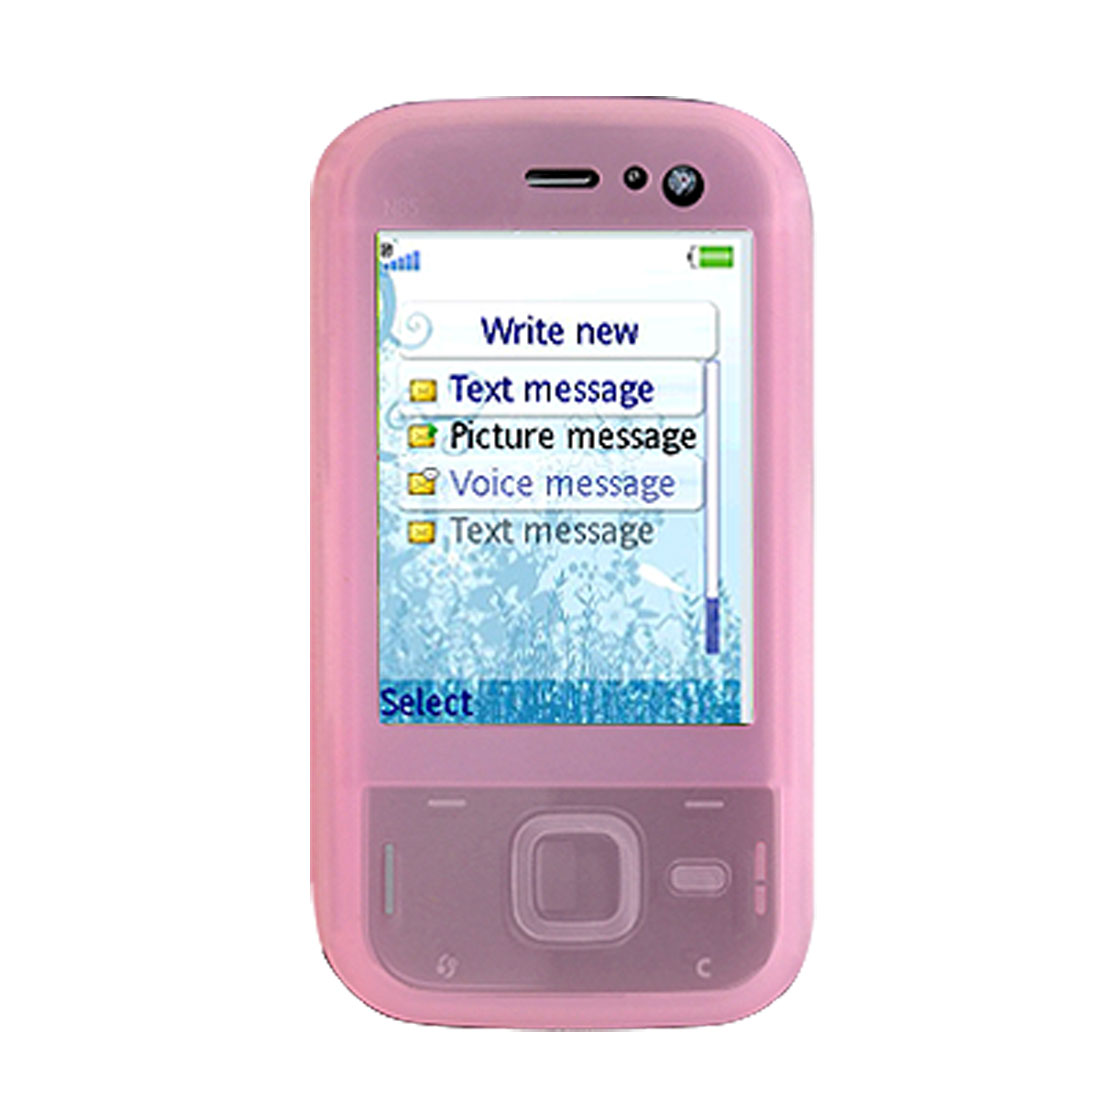 Elegant Soft Silicone Cover for Nokia N85 - Pink